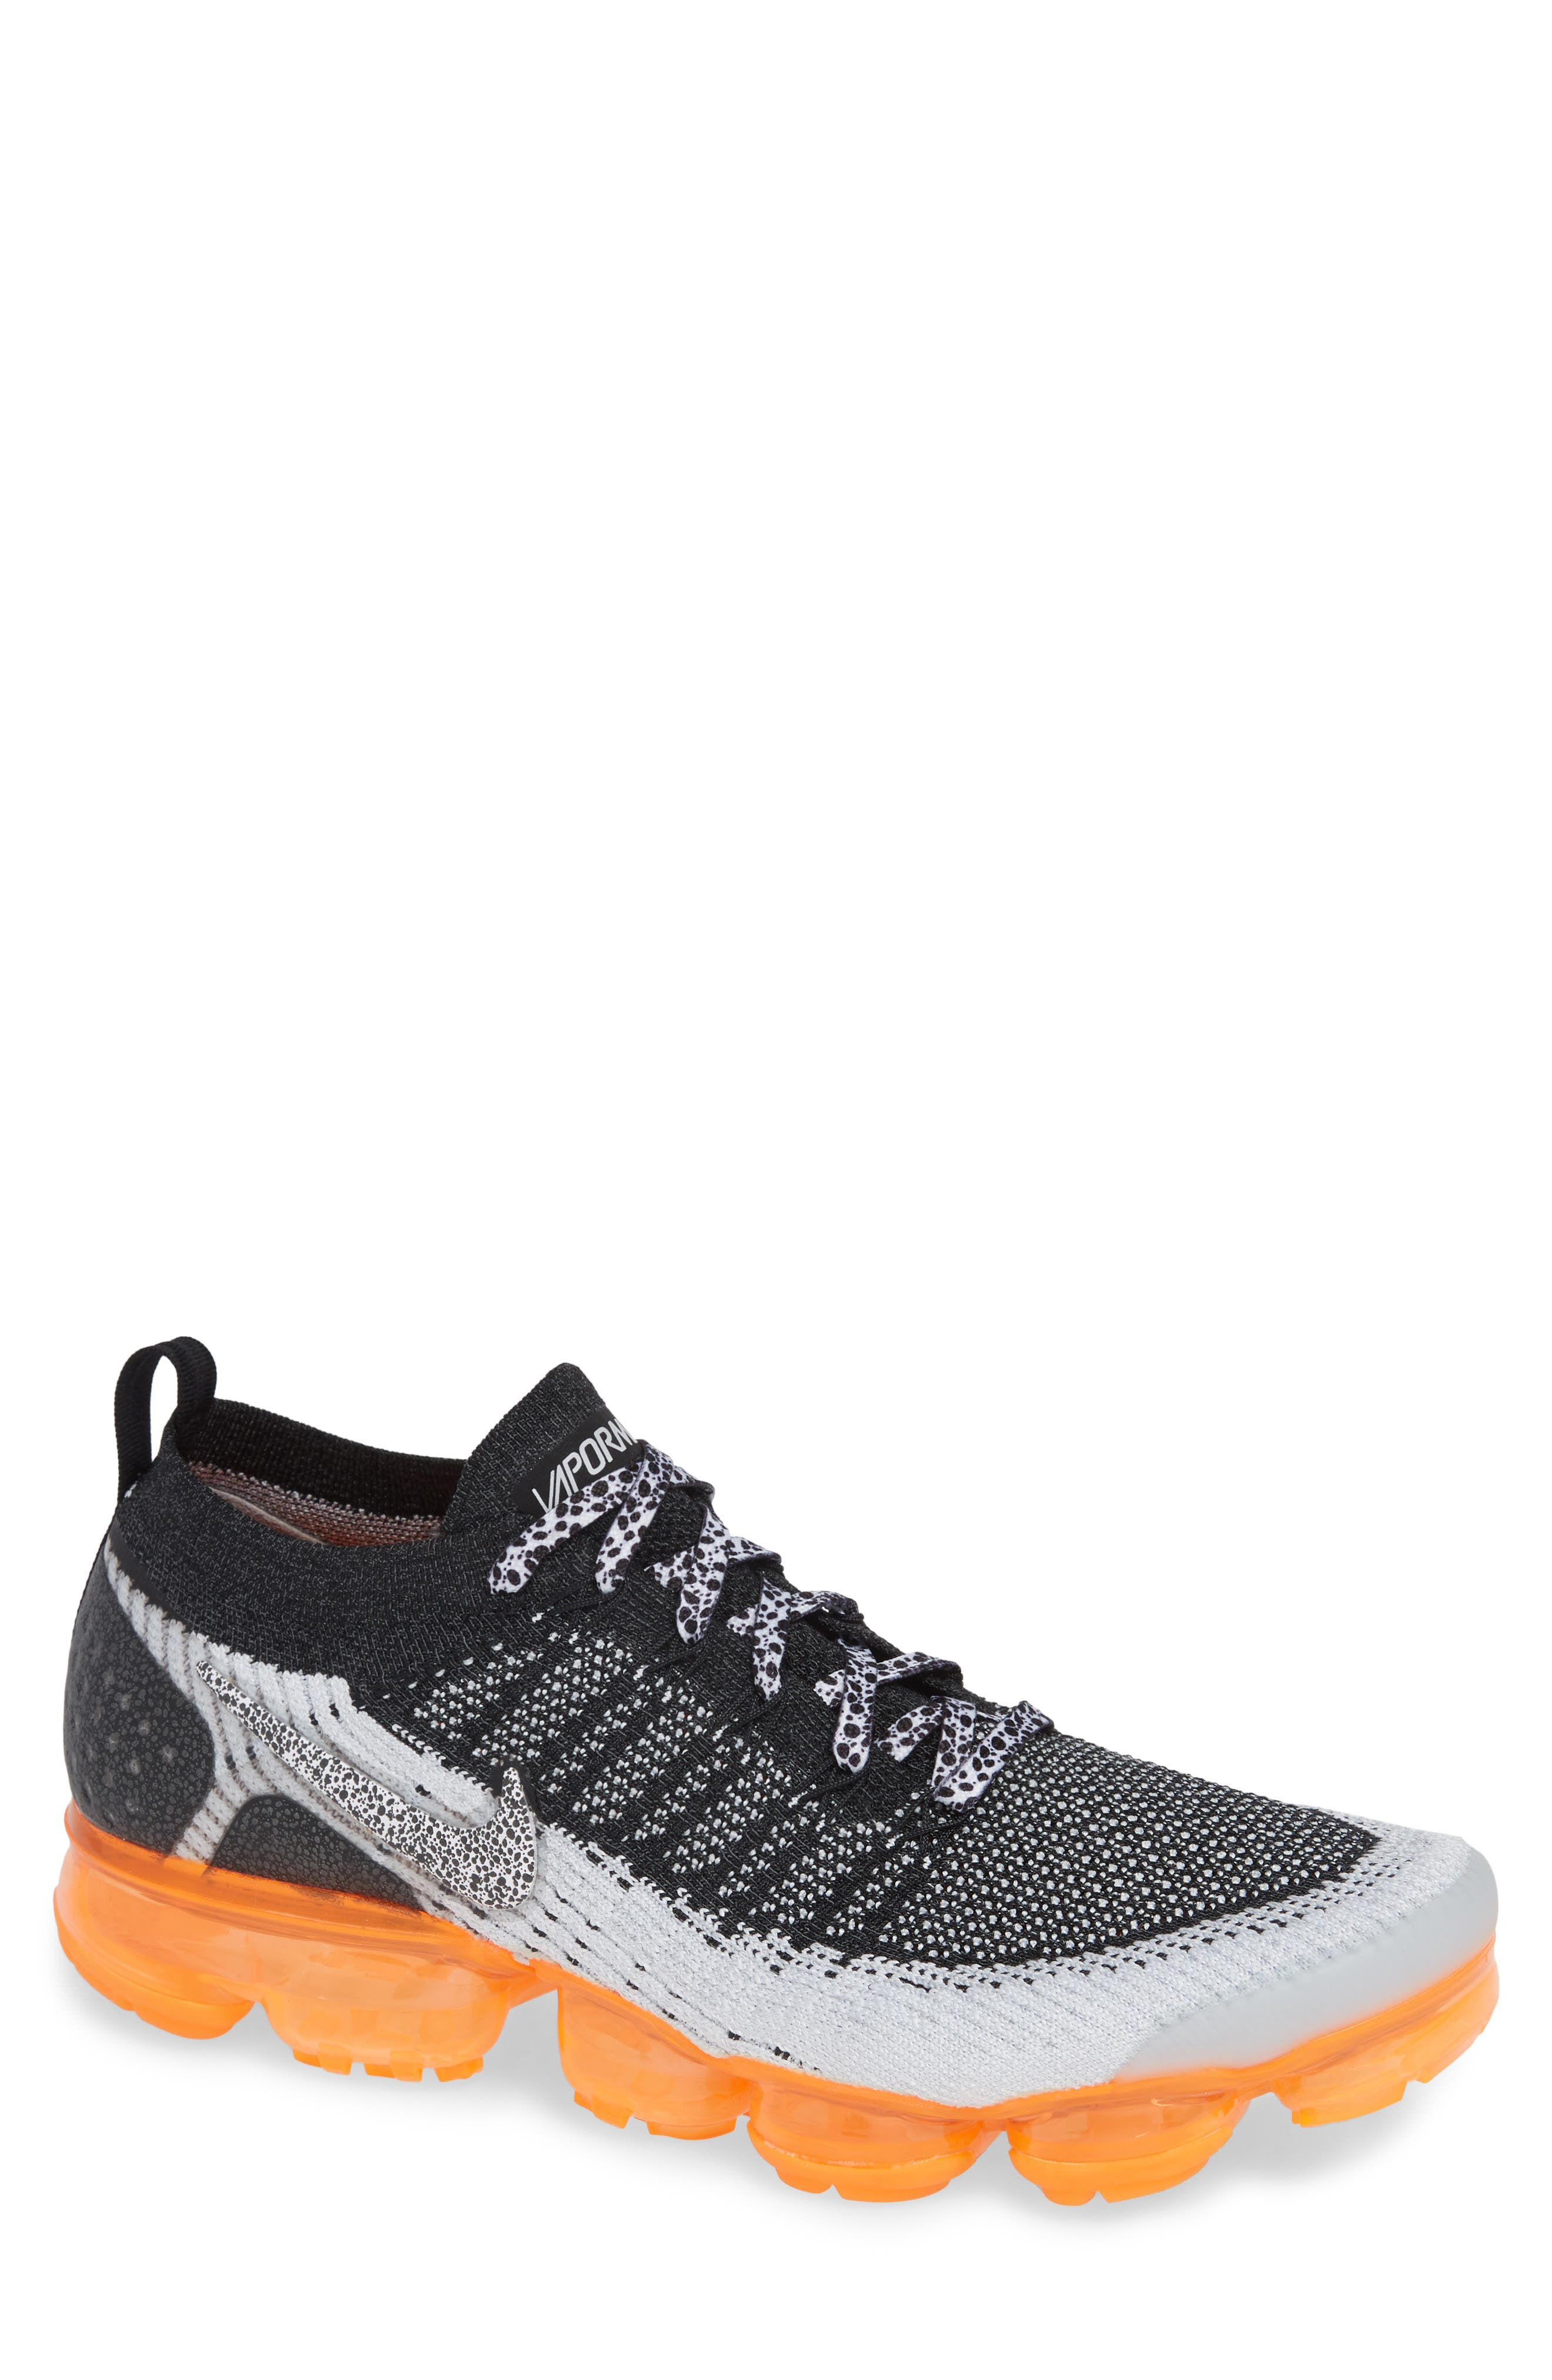 NIKE Air VaporMax Flyknit 2 Running Shoe, Main, color, WHITE/ BLACK/ TOTAL ORANGE